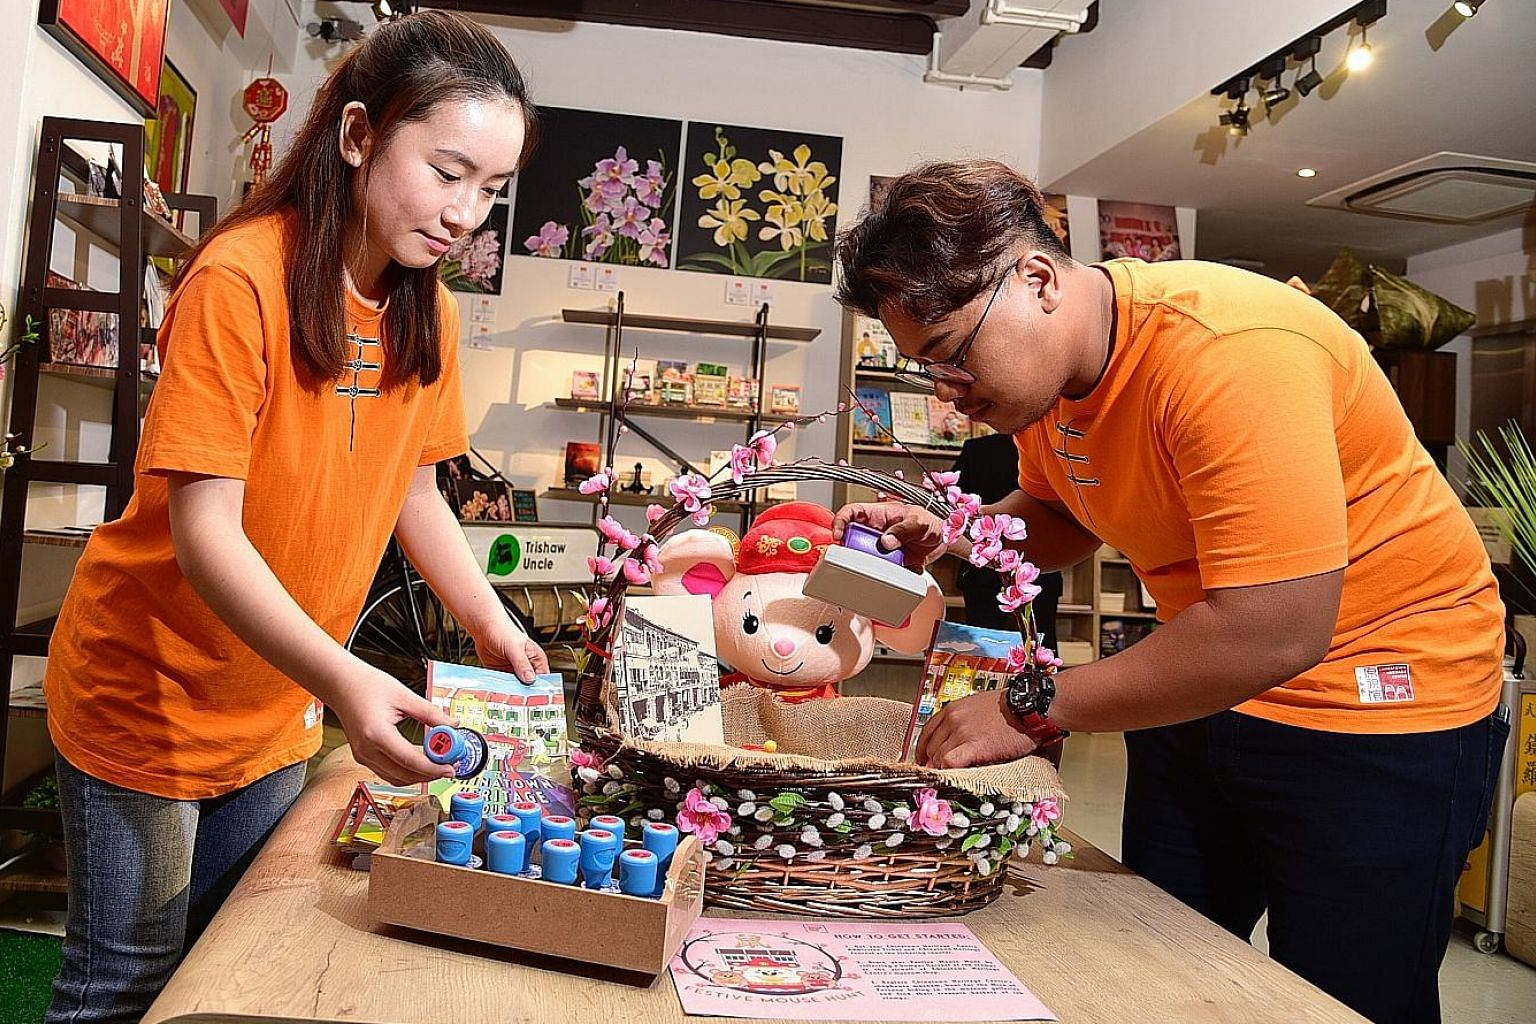 Chinatown Heritage Centre staff Tan Ching Ying, 22, and Muhammad Luthfil Hady, 21, with the ink stamps and journals which visitors can buy to collect the stamps.